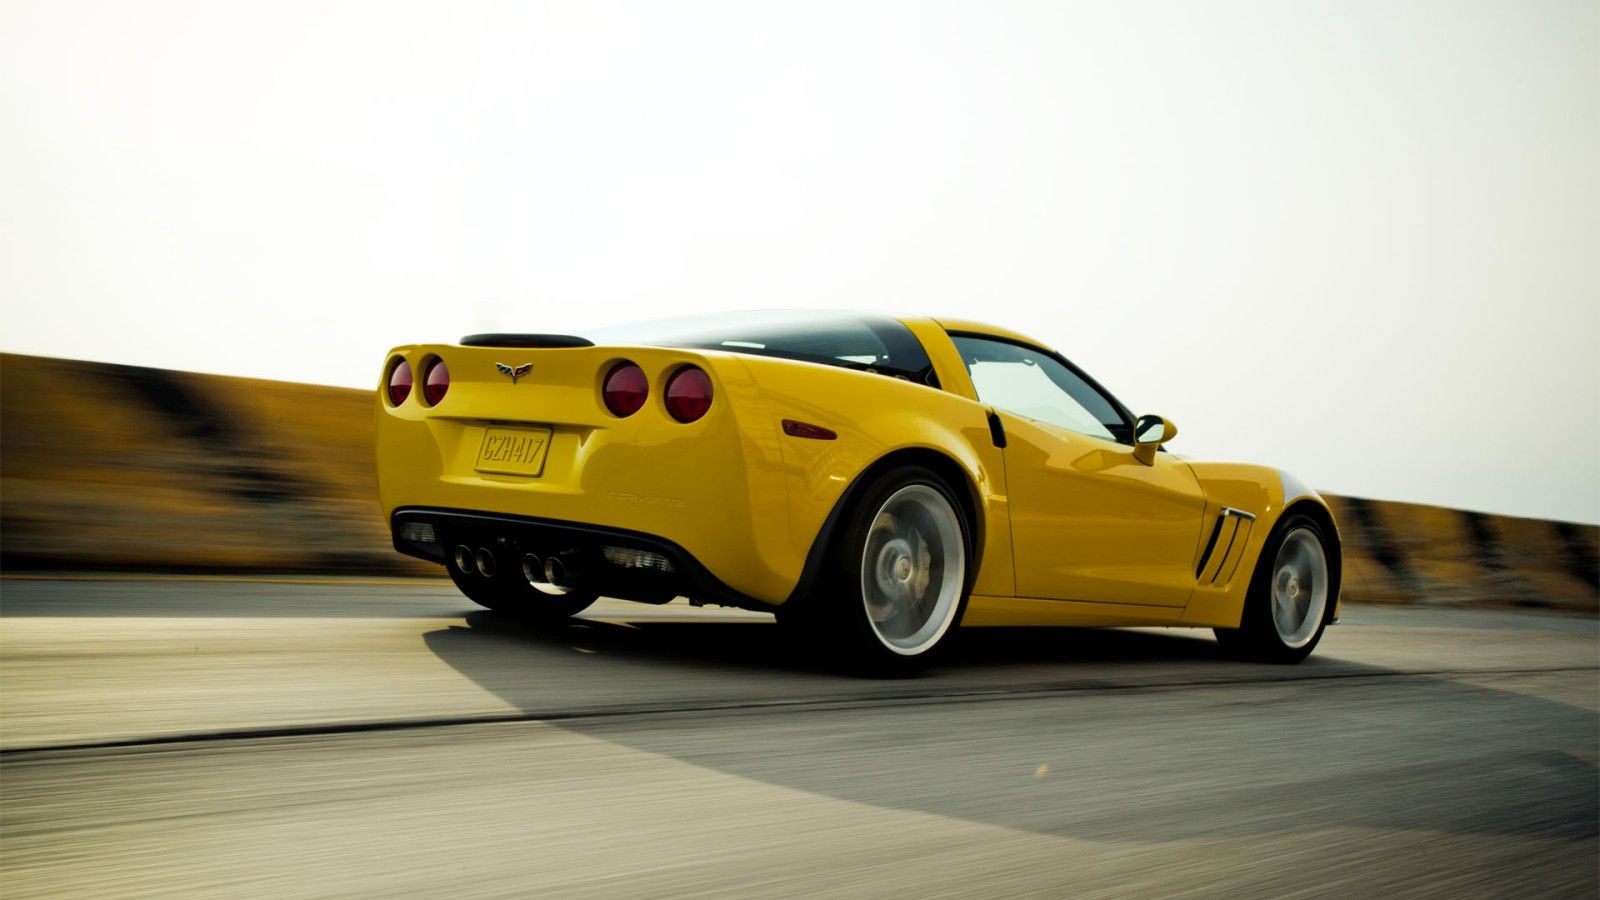 2015 Corvette Stingray Exterior Pictures Chevrolet